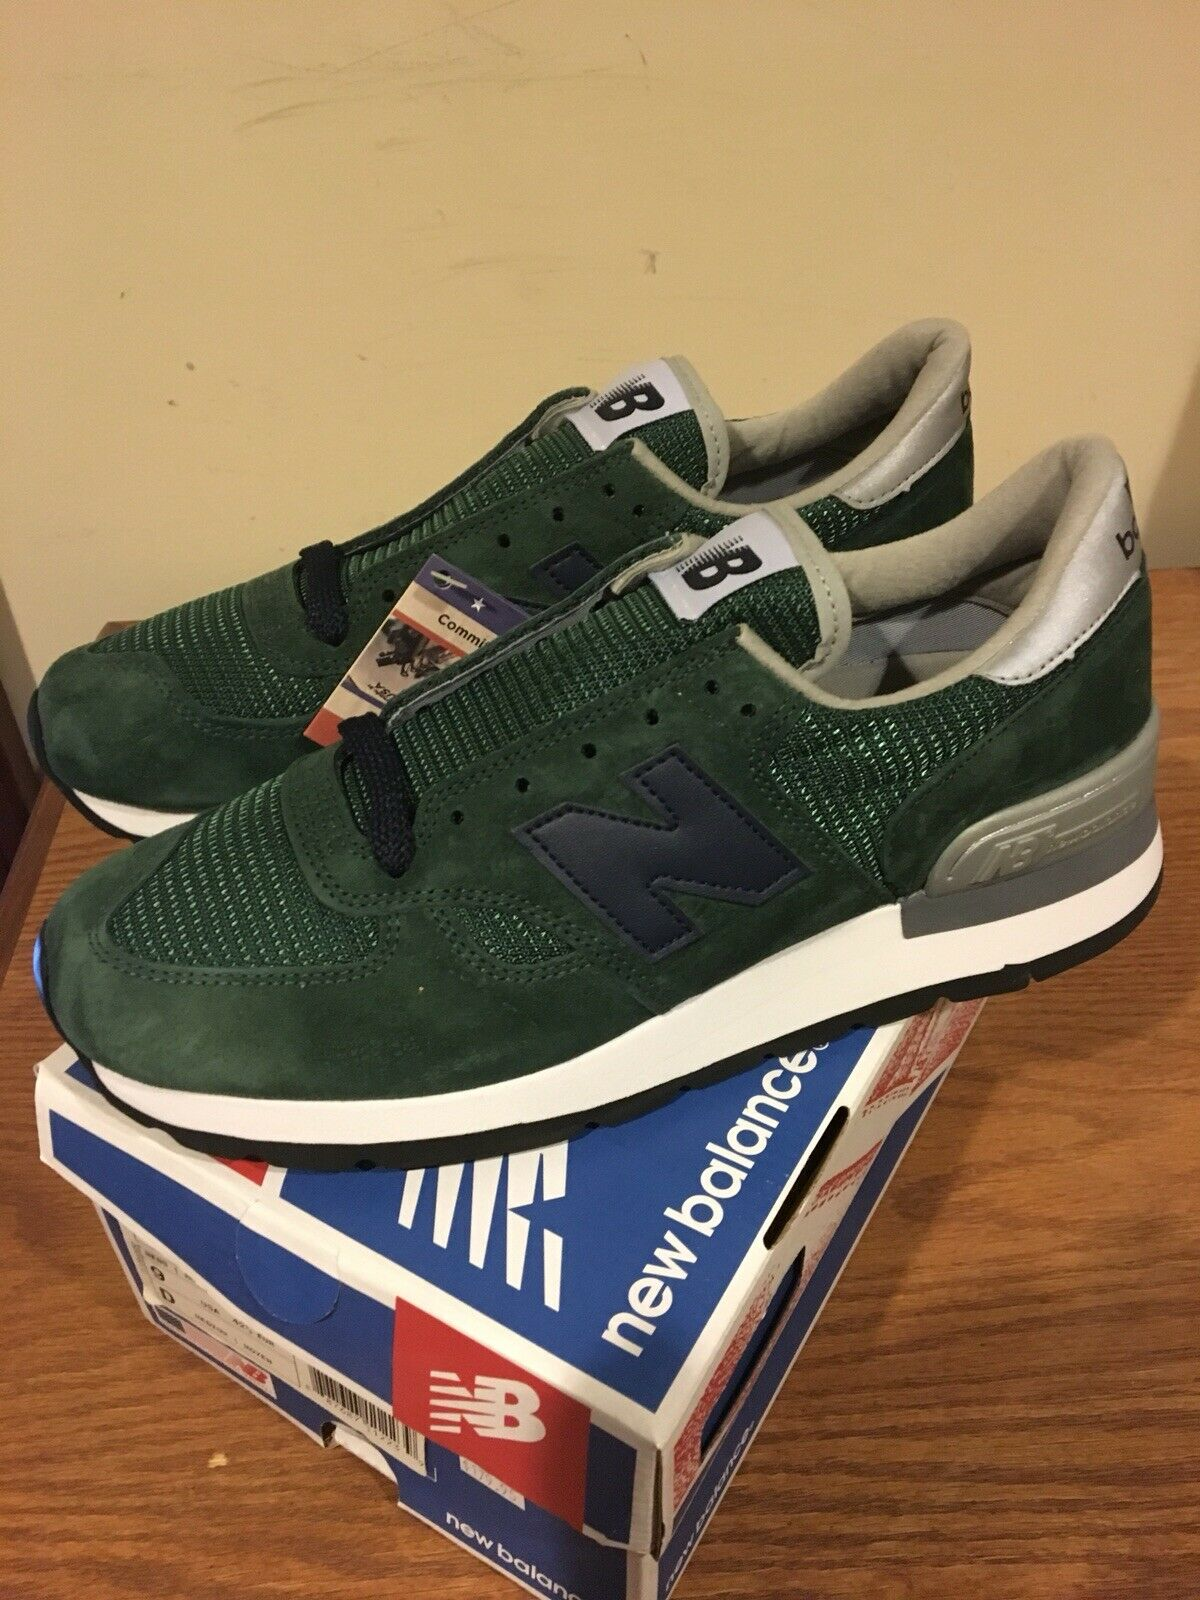 nouveau   990 Go vert taille 9 made in USA NEUF